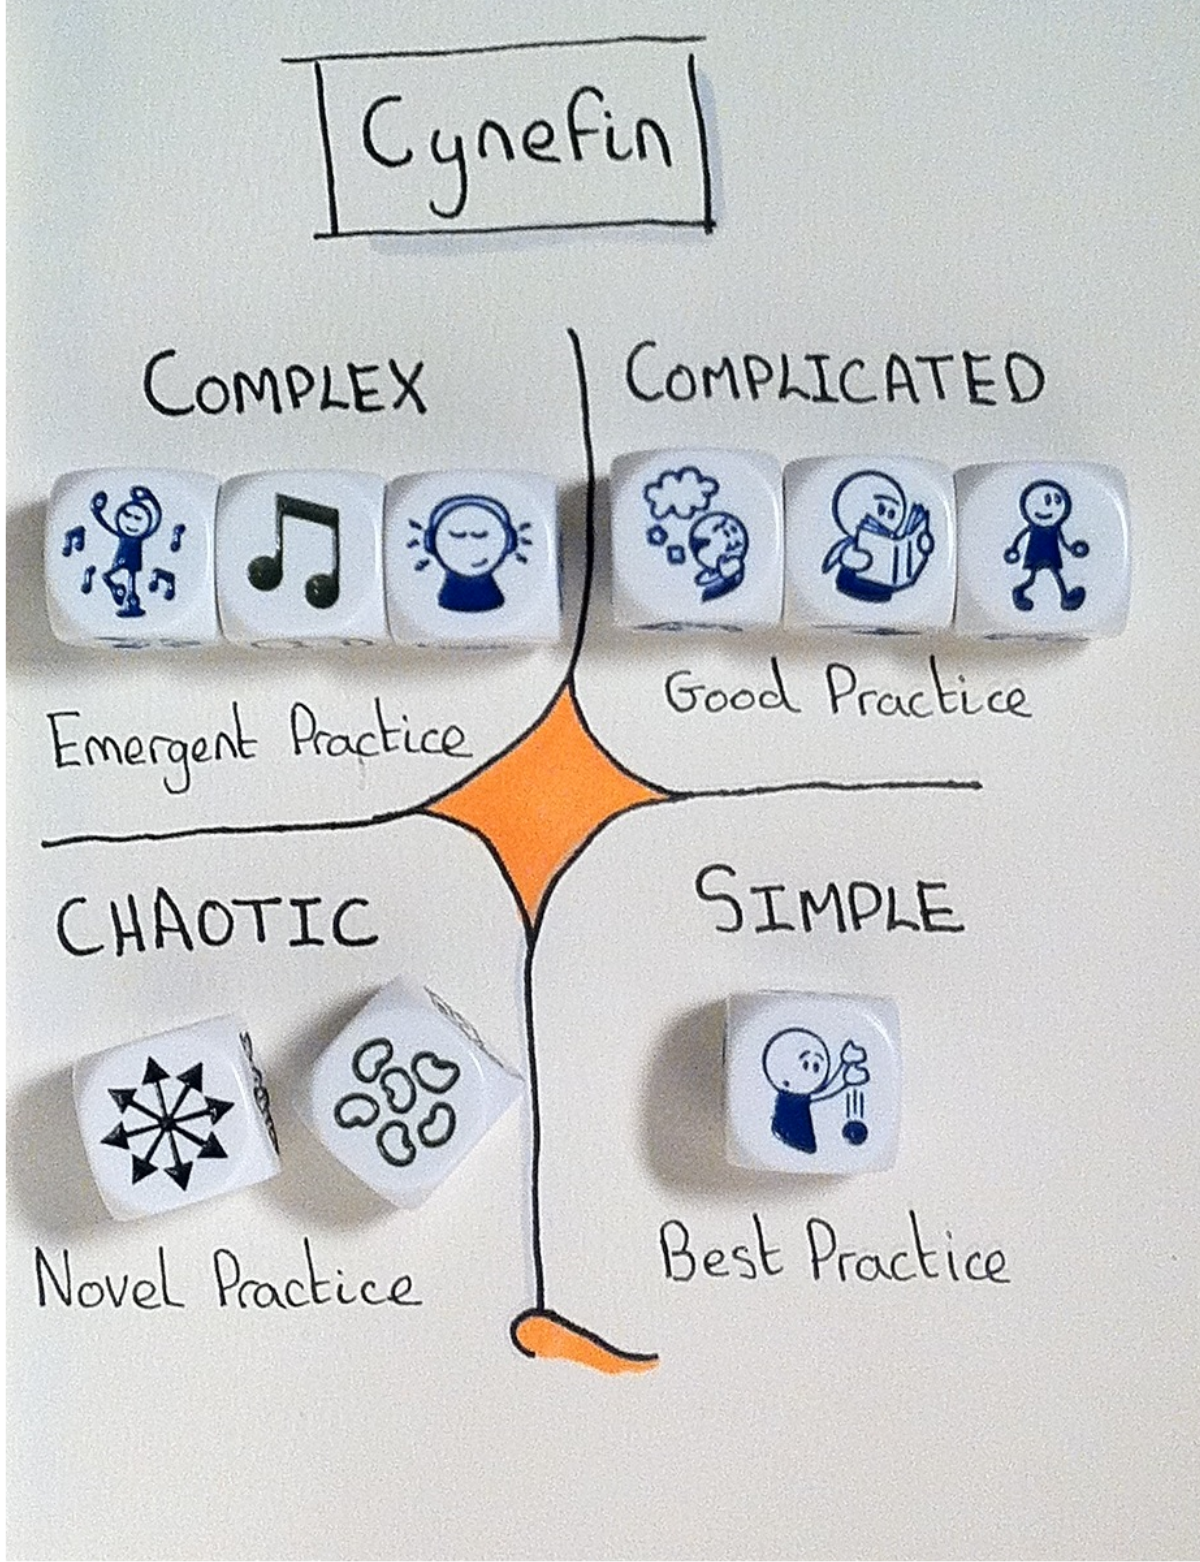 Cynefin Framework sketch